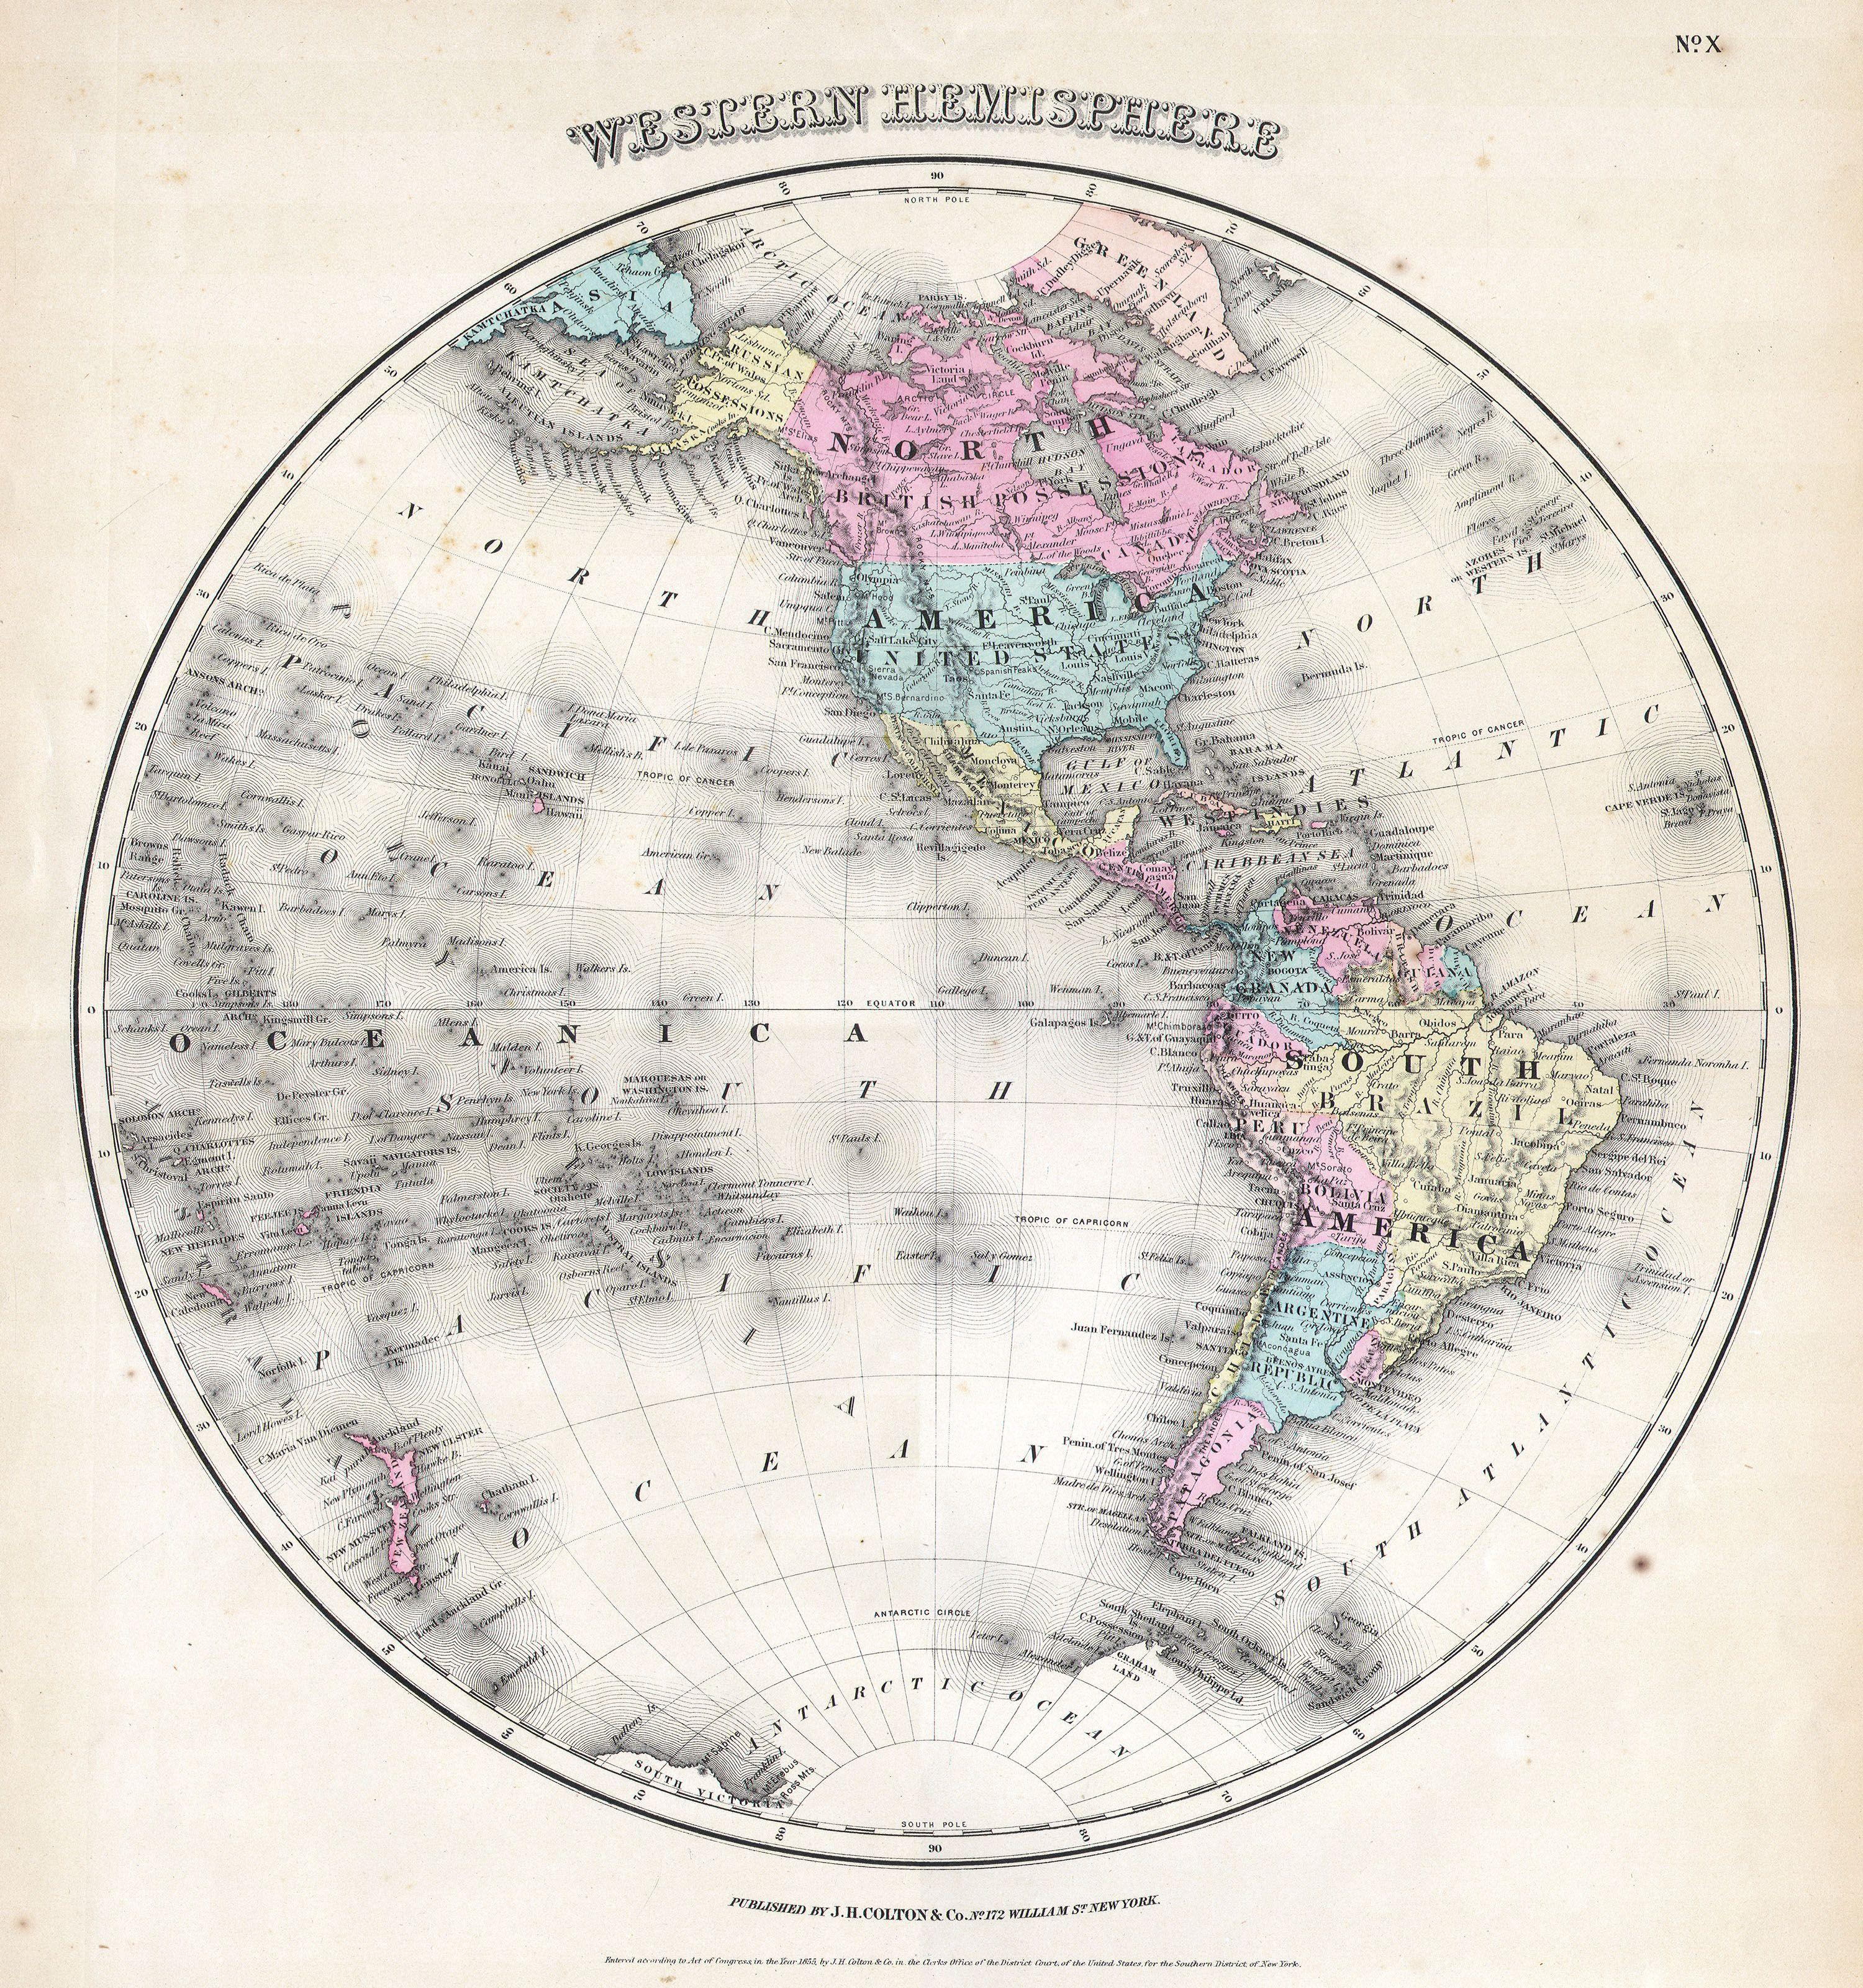 picture about Western Hemisphere Map Printable identified as History:1855 Colton Map of the Western Hemisphere